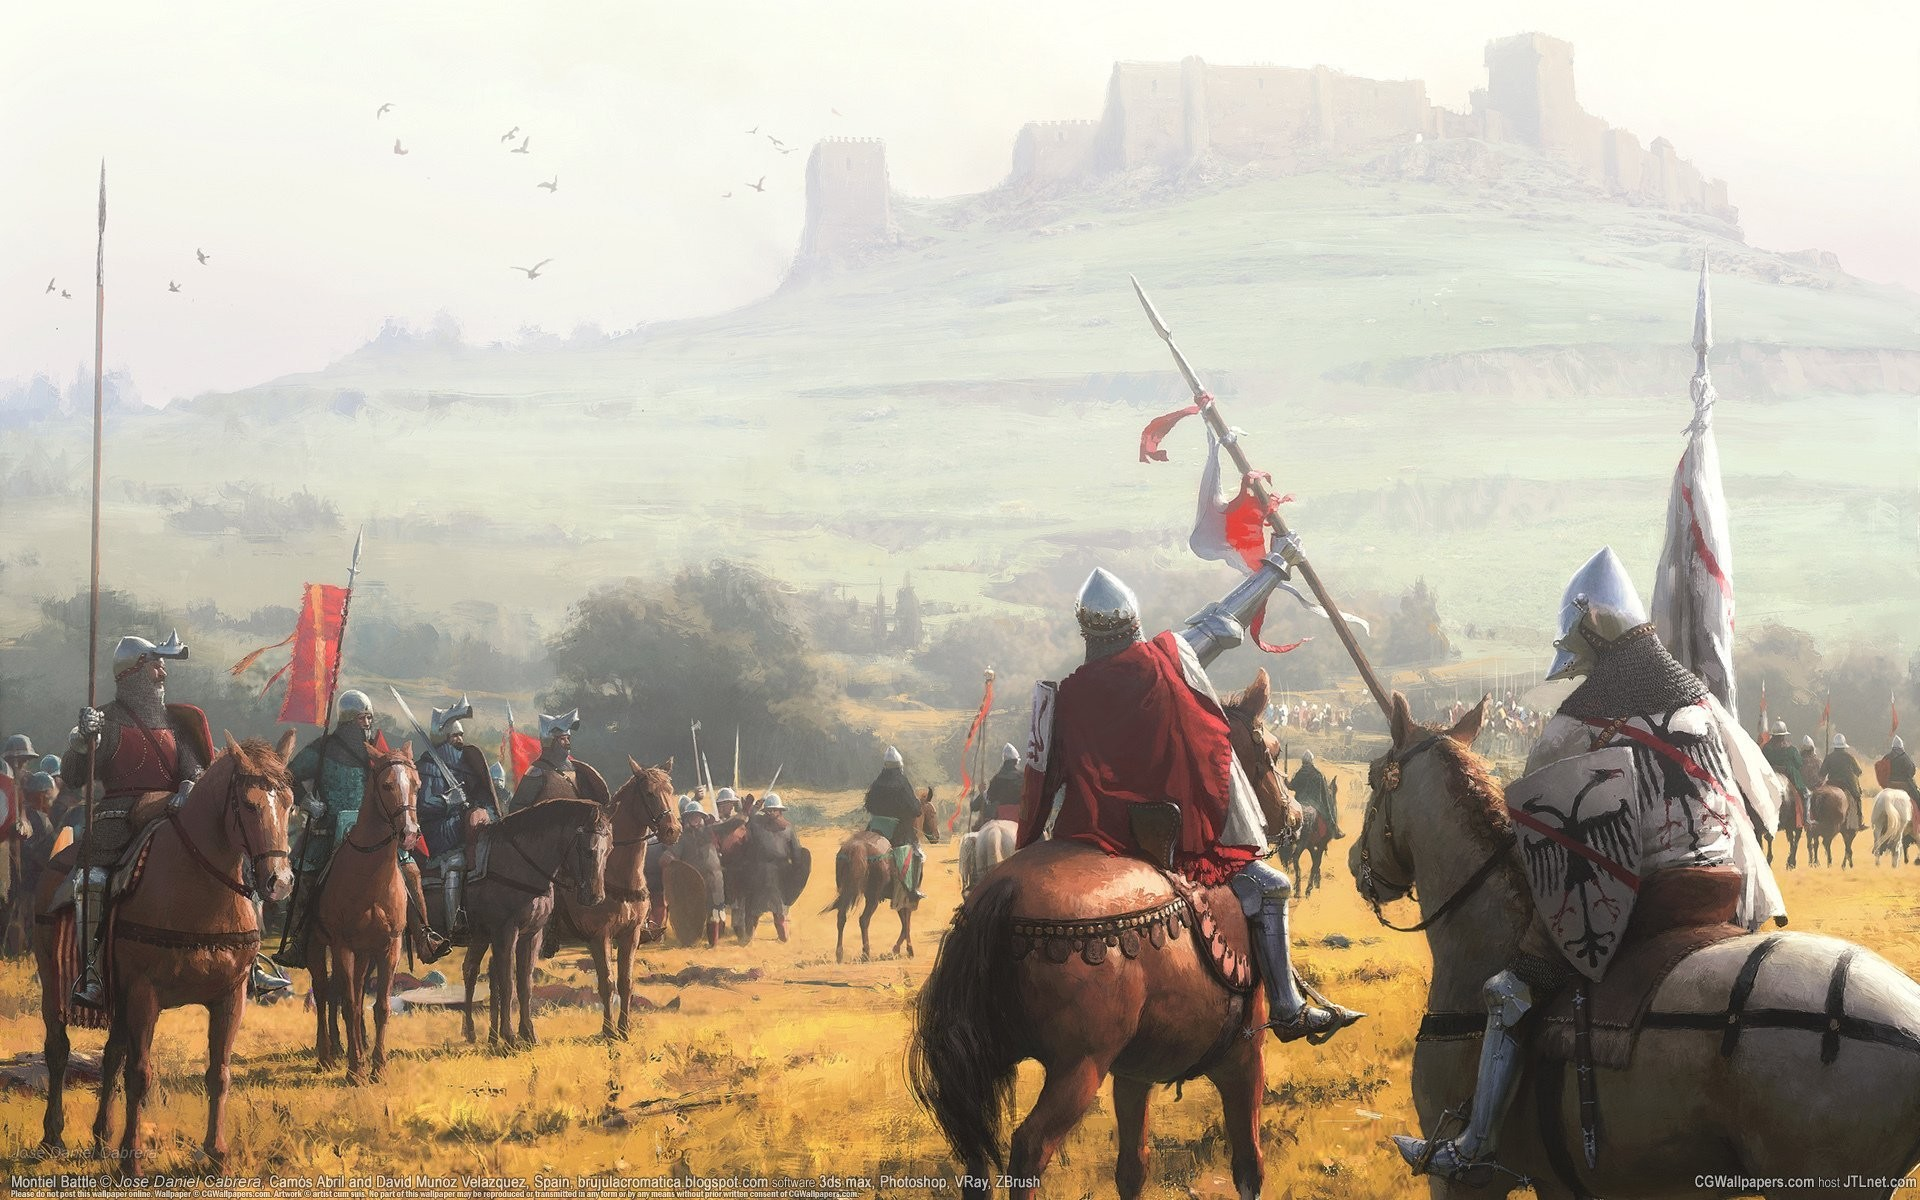 1920x1200 jose daniel cabrera montiel battle cg wallpapers middle ages castle knights  horses middle ages castle hill